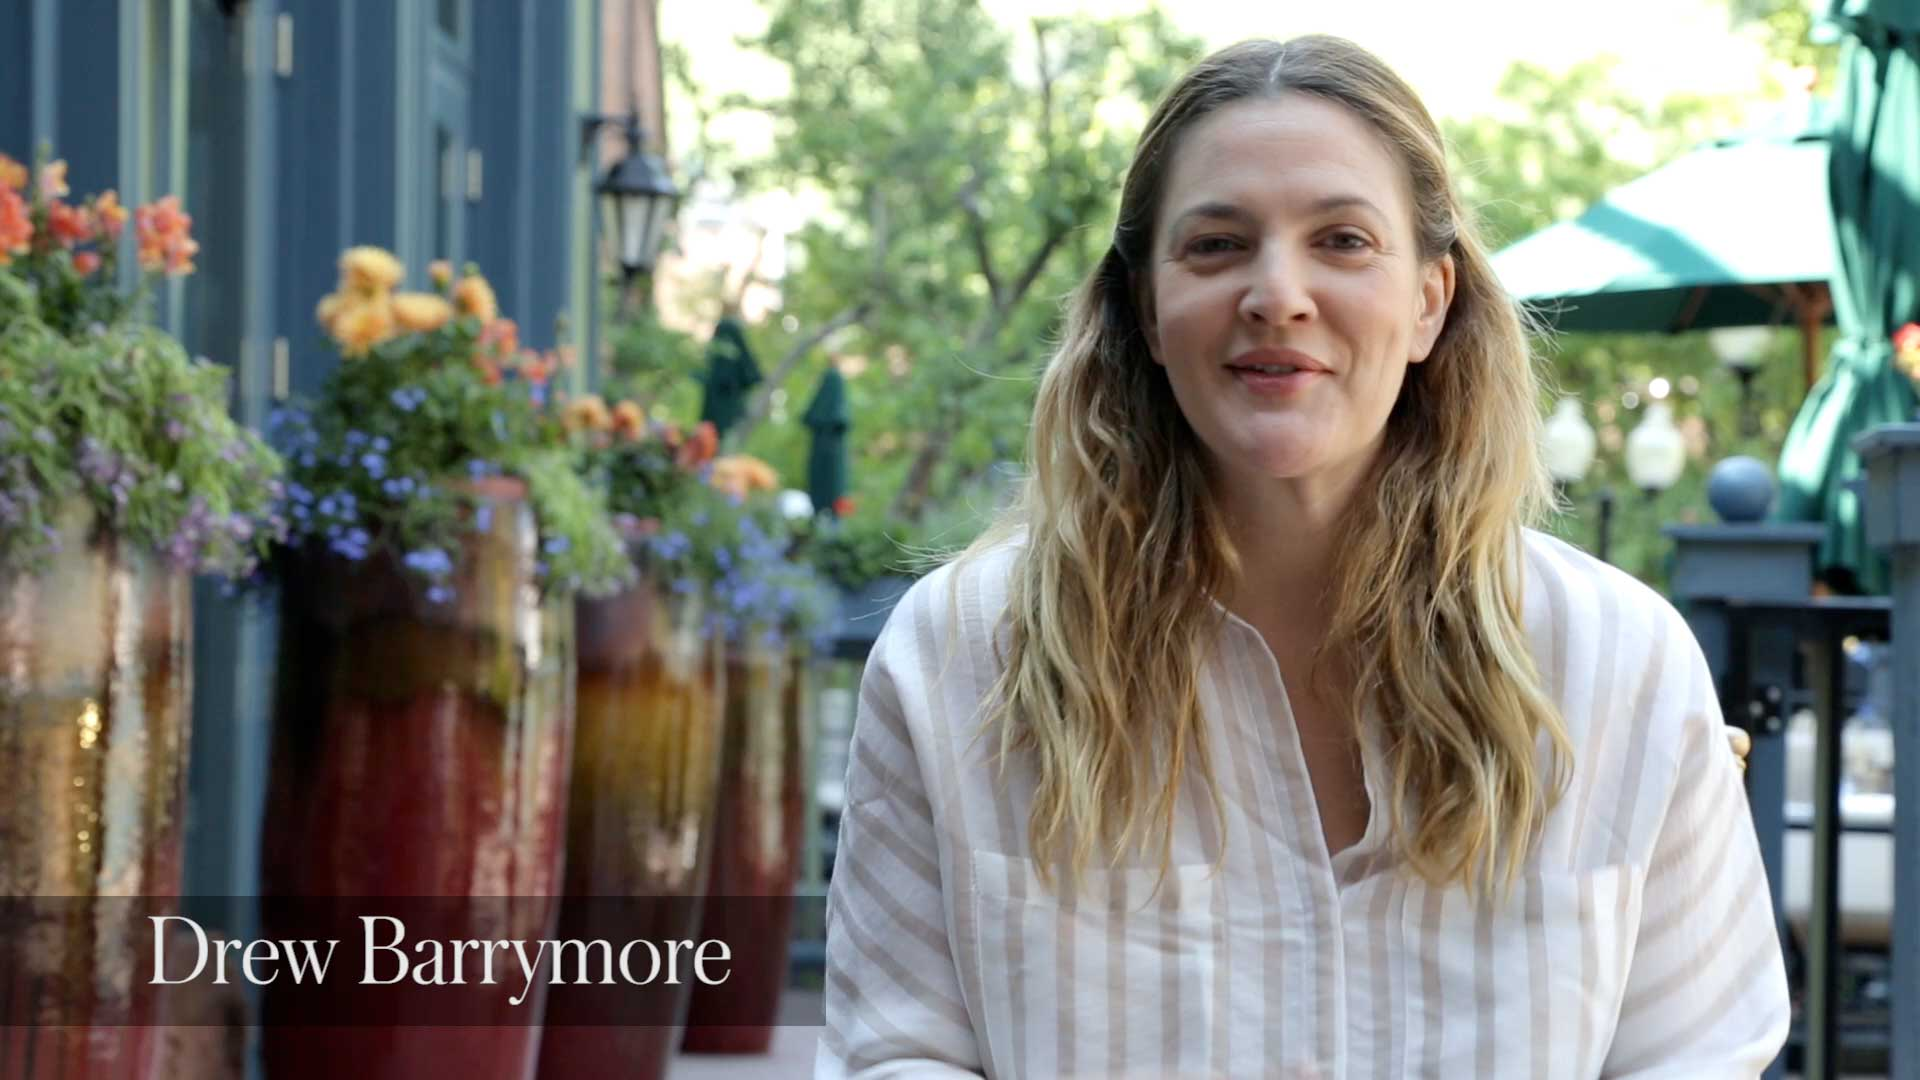 Drew Barrymore at the Food & Wine Classic in Aspen